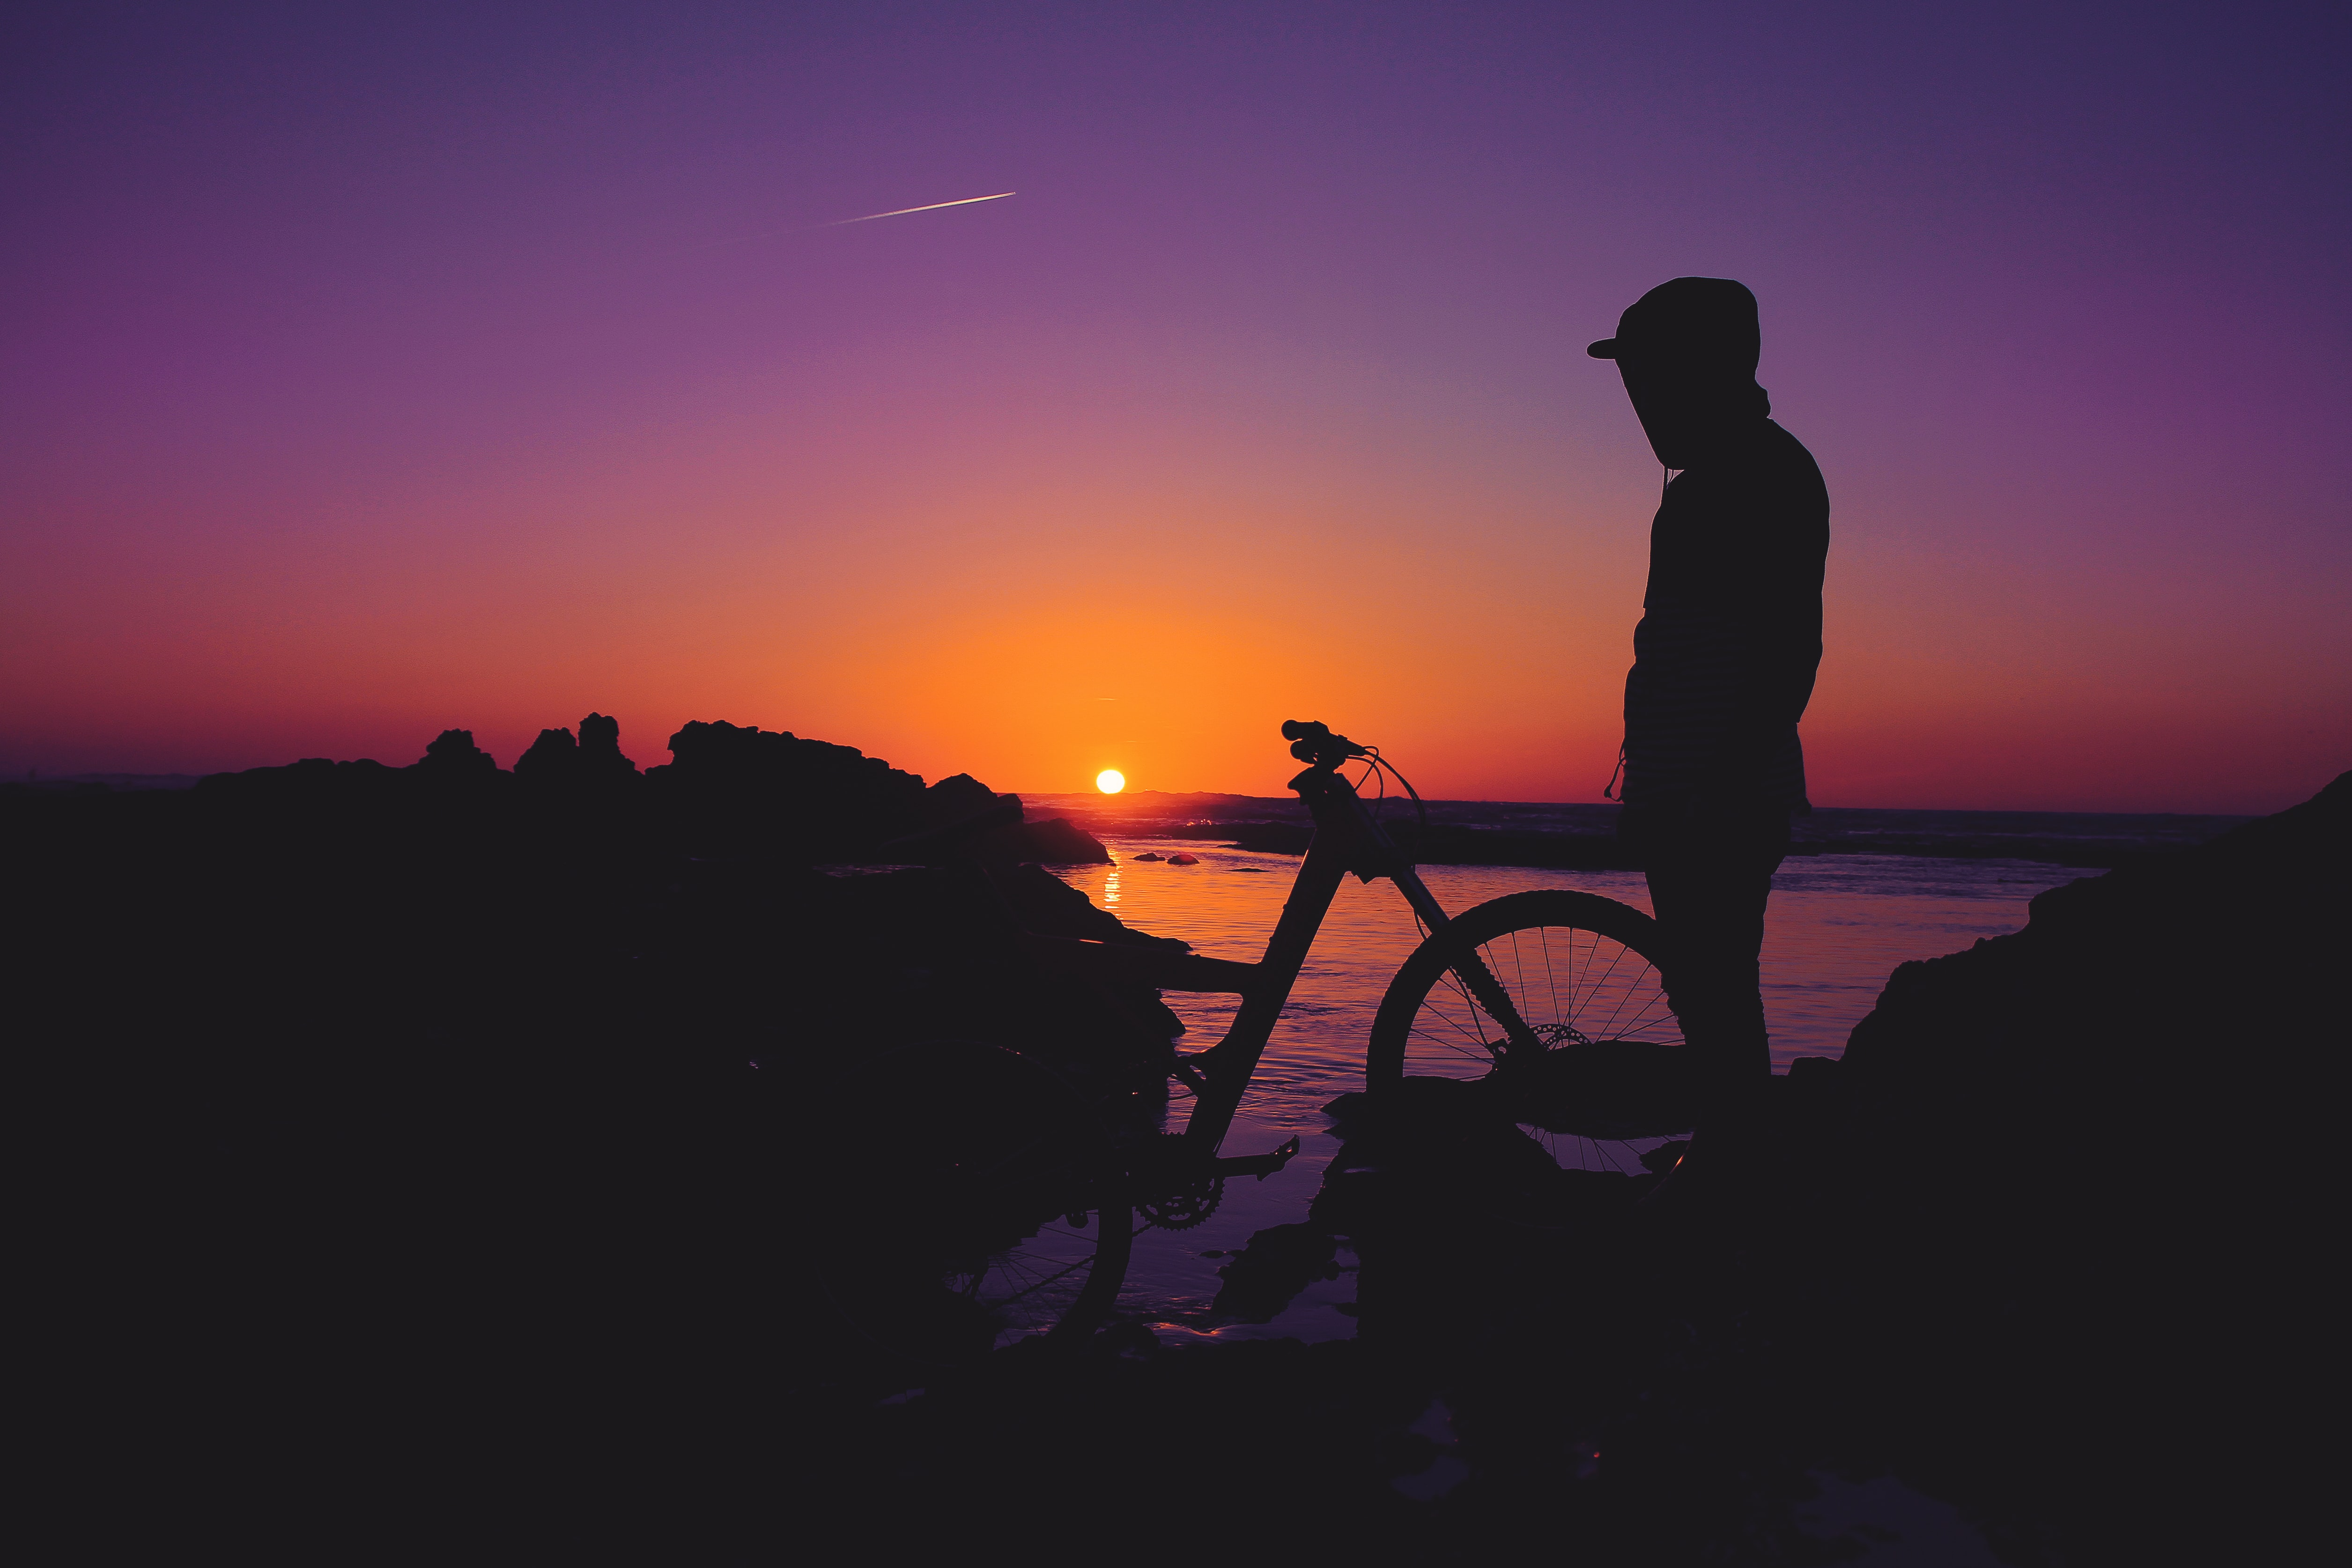 silhouette of person standing near bicycle